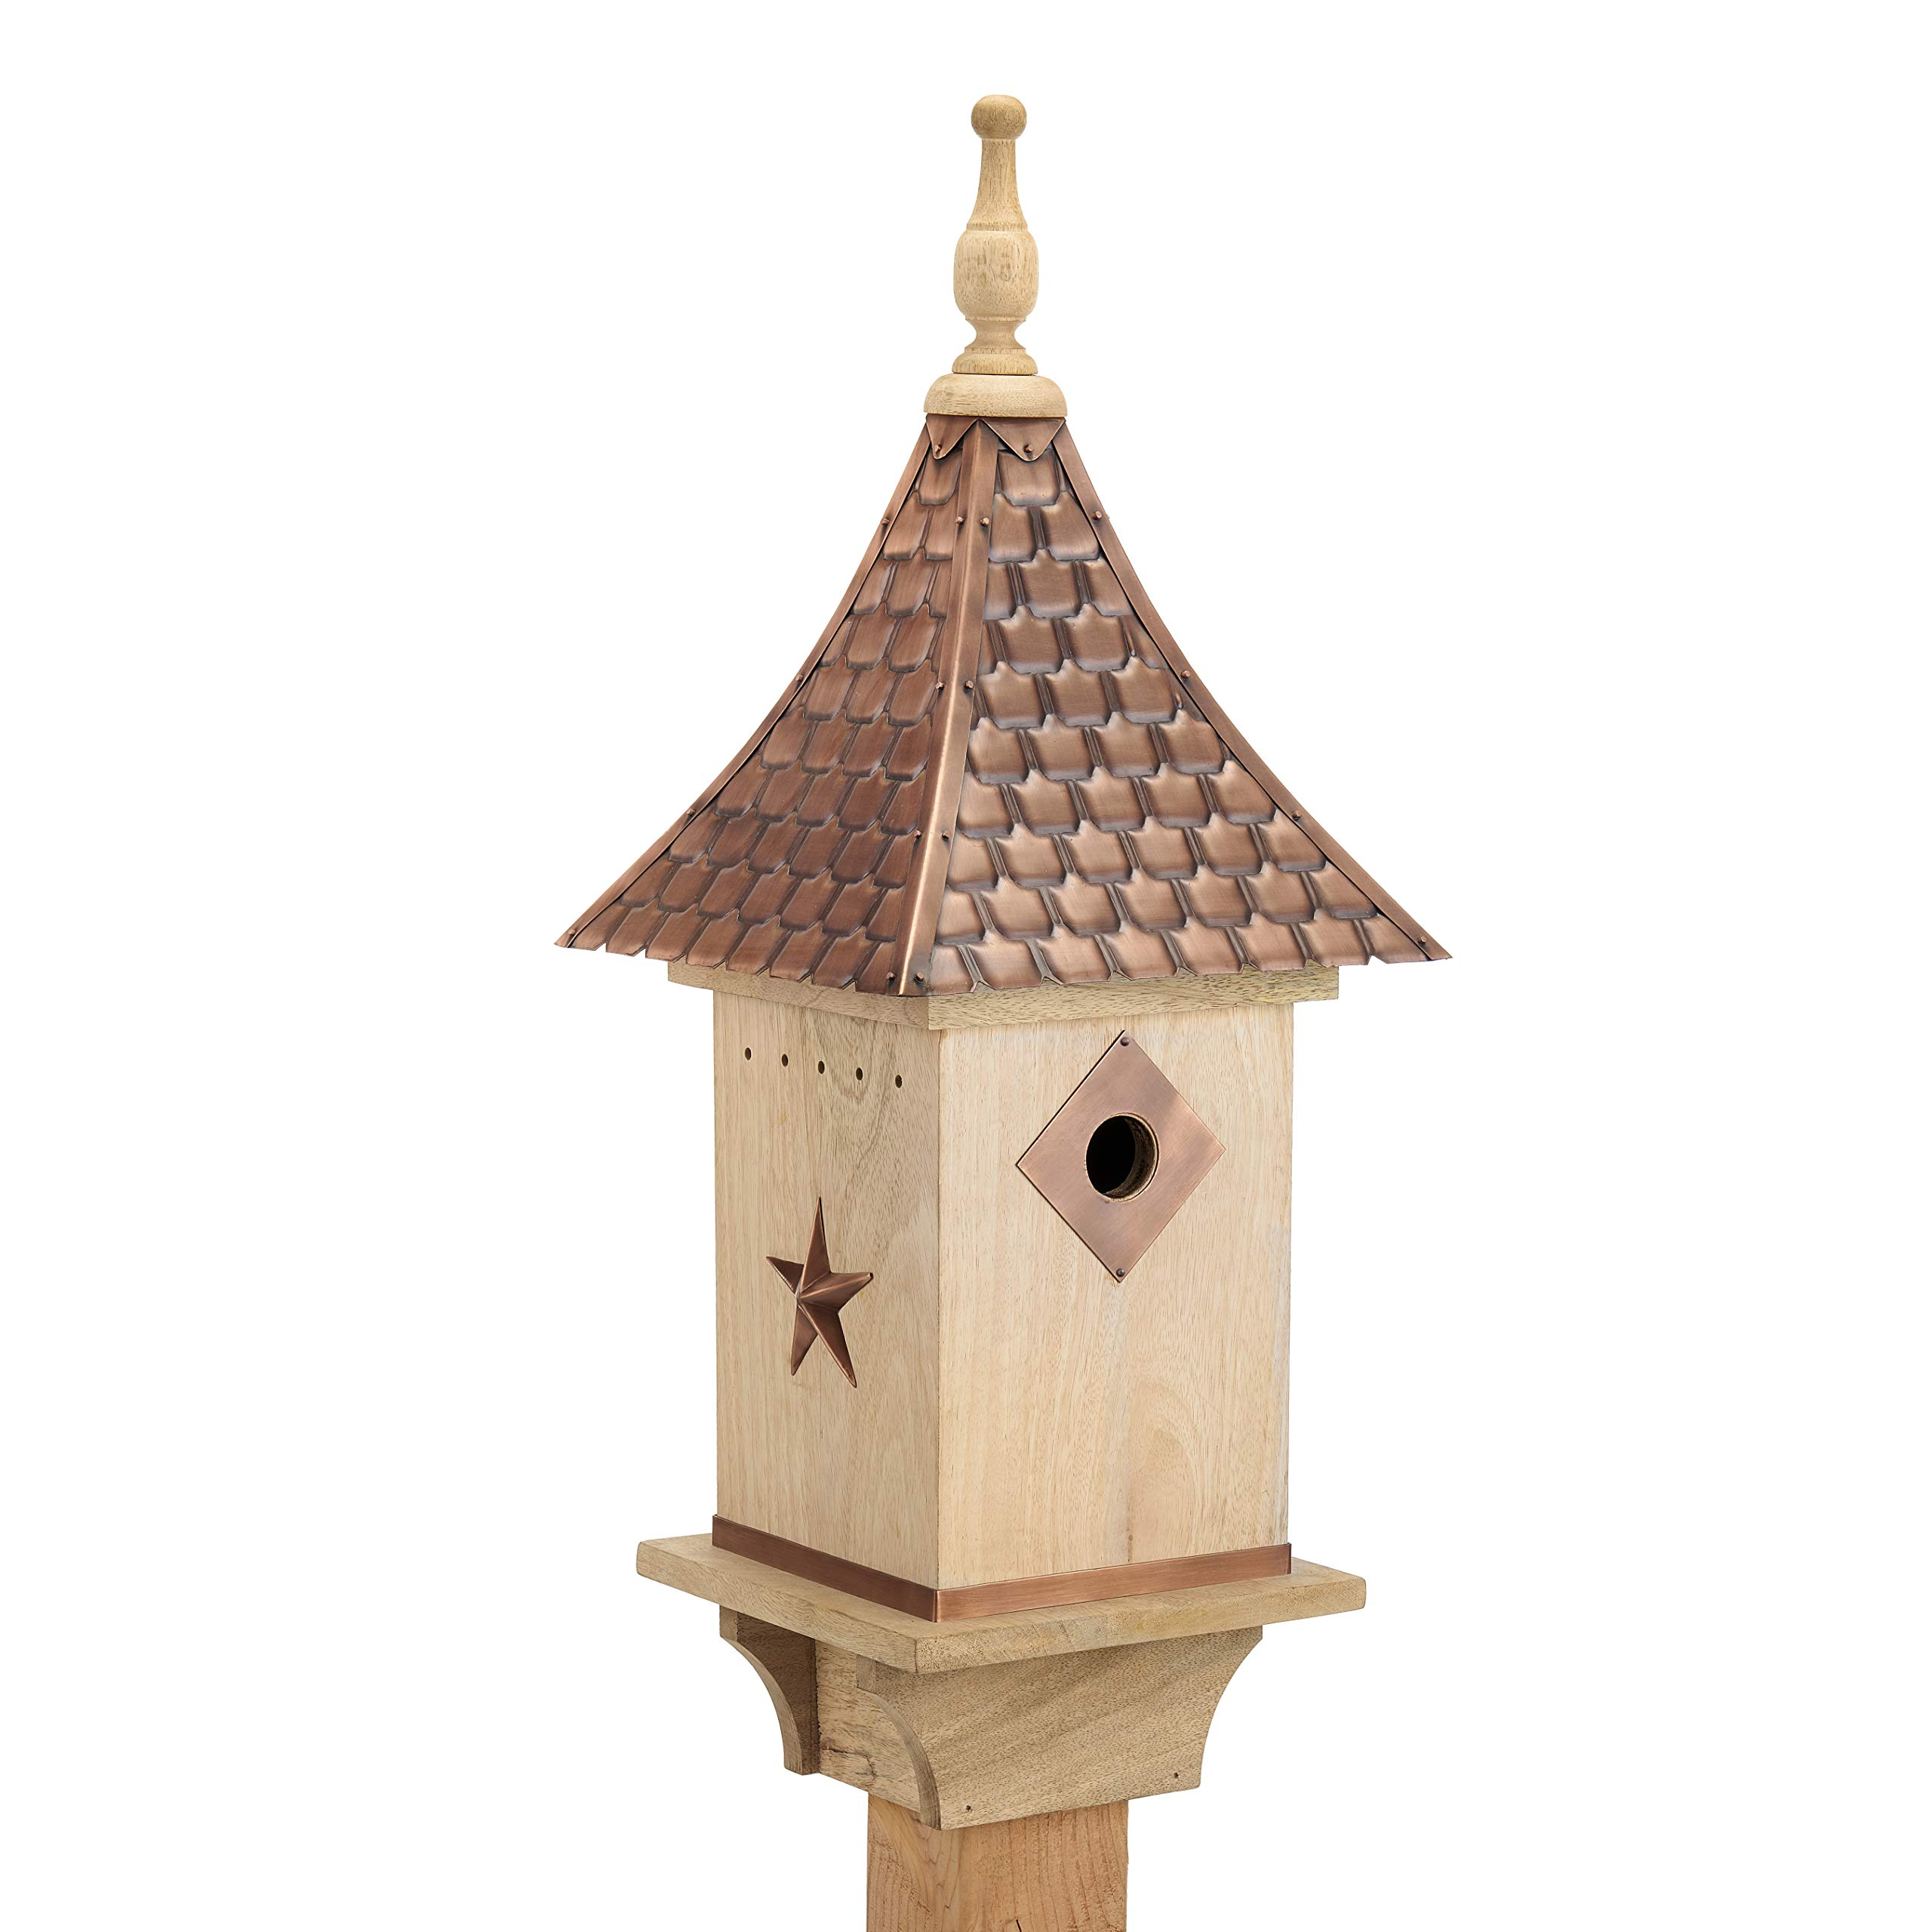 Good Directions BH201W Copper Shingled Roof Bird House